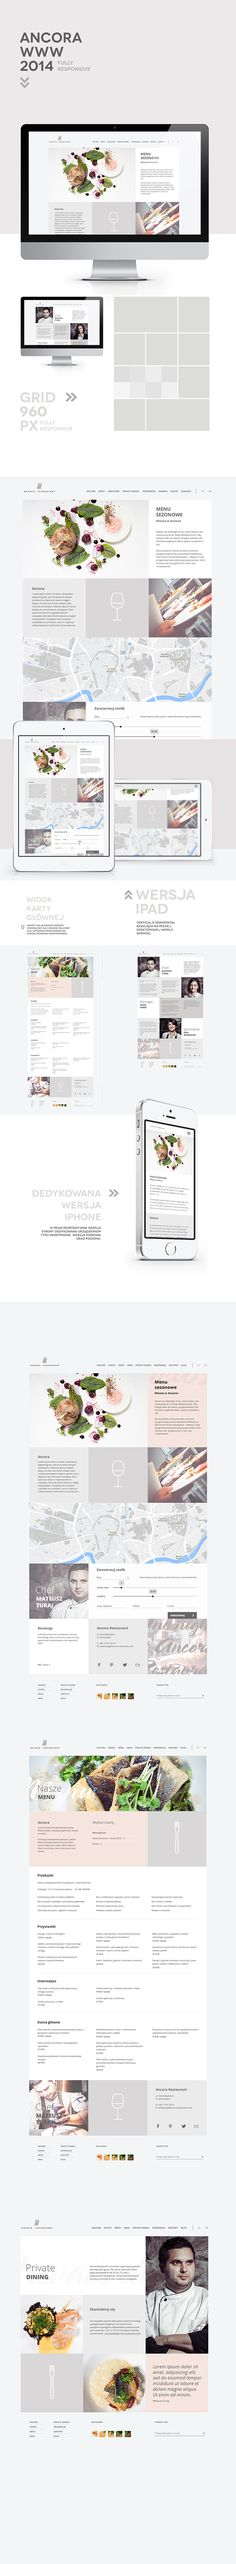 Ancora Restaurant Website by Jarek Nakielny, via Behance